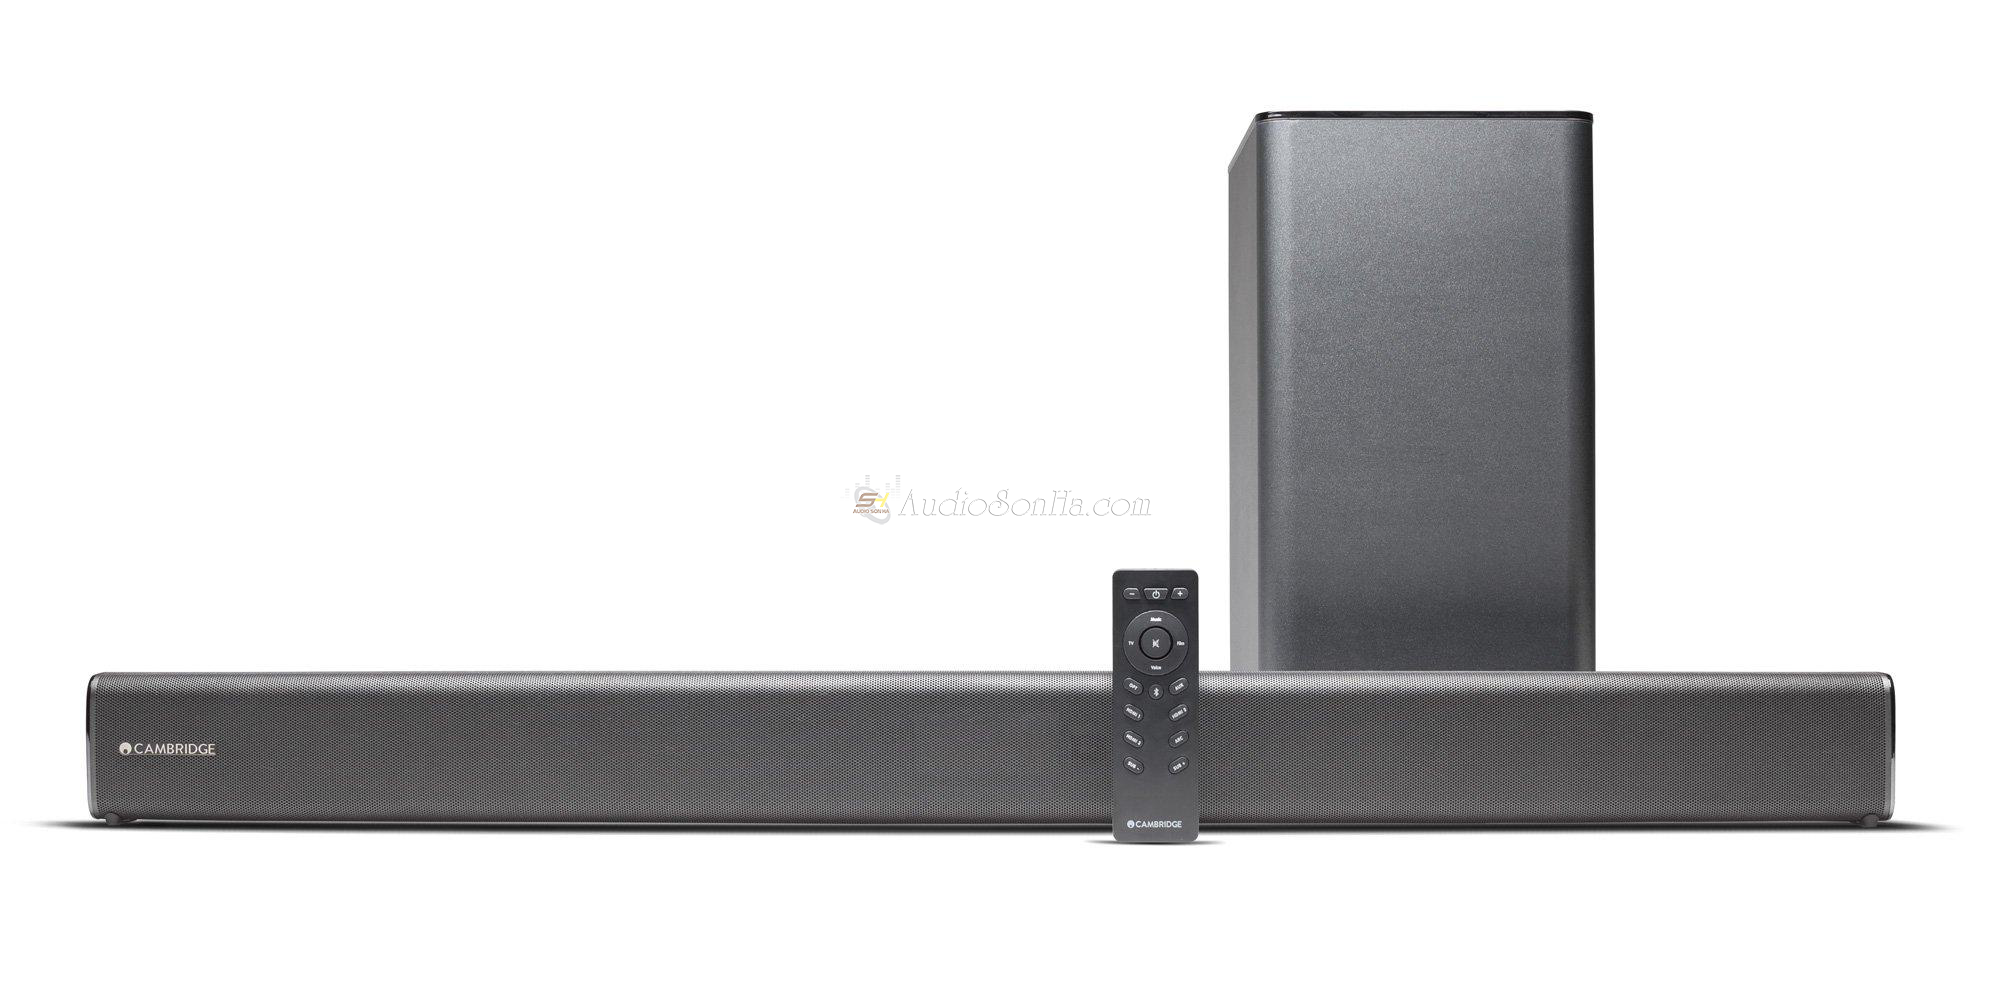 Cambridge TVB2 (v2) Soundbar